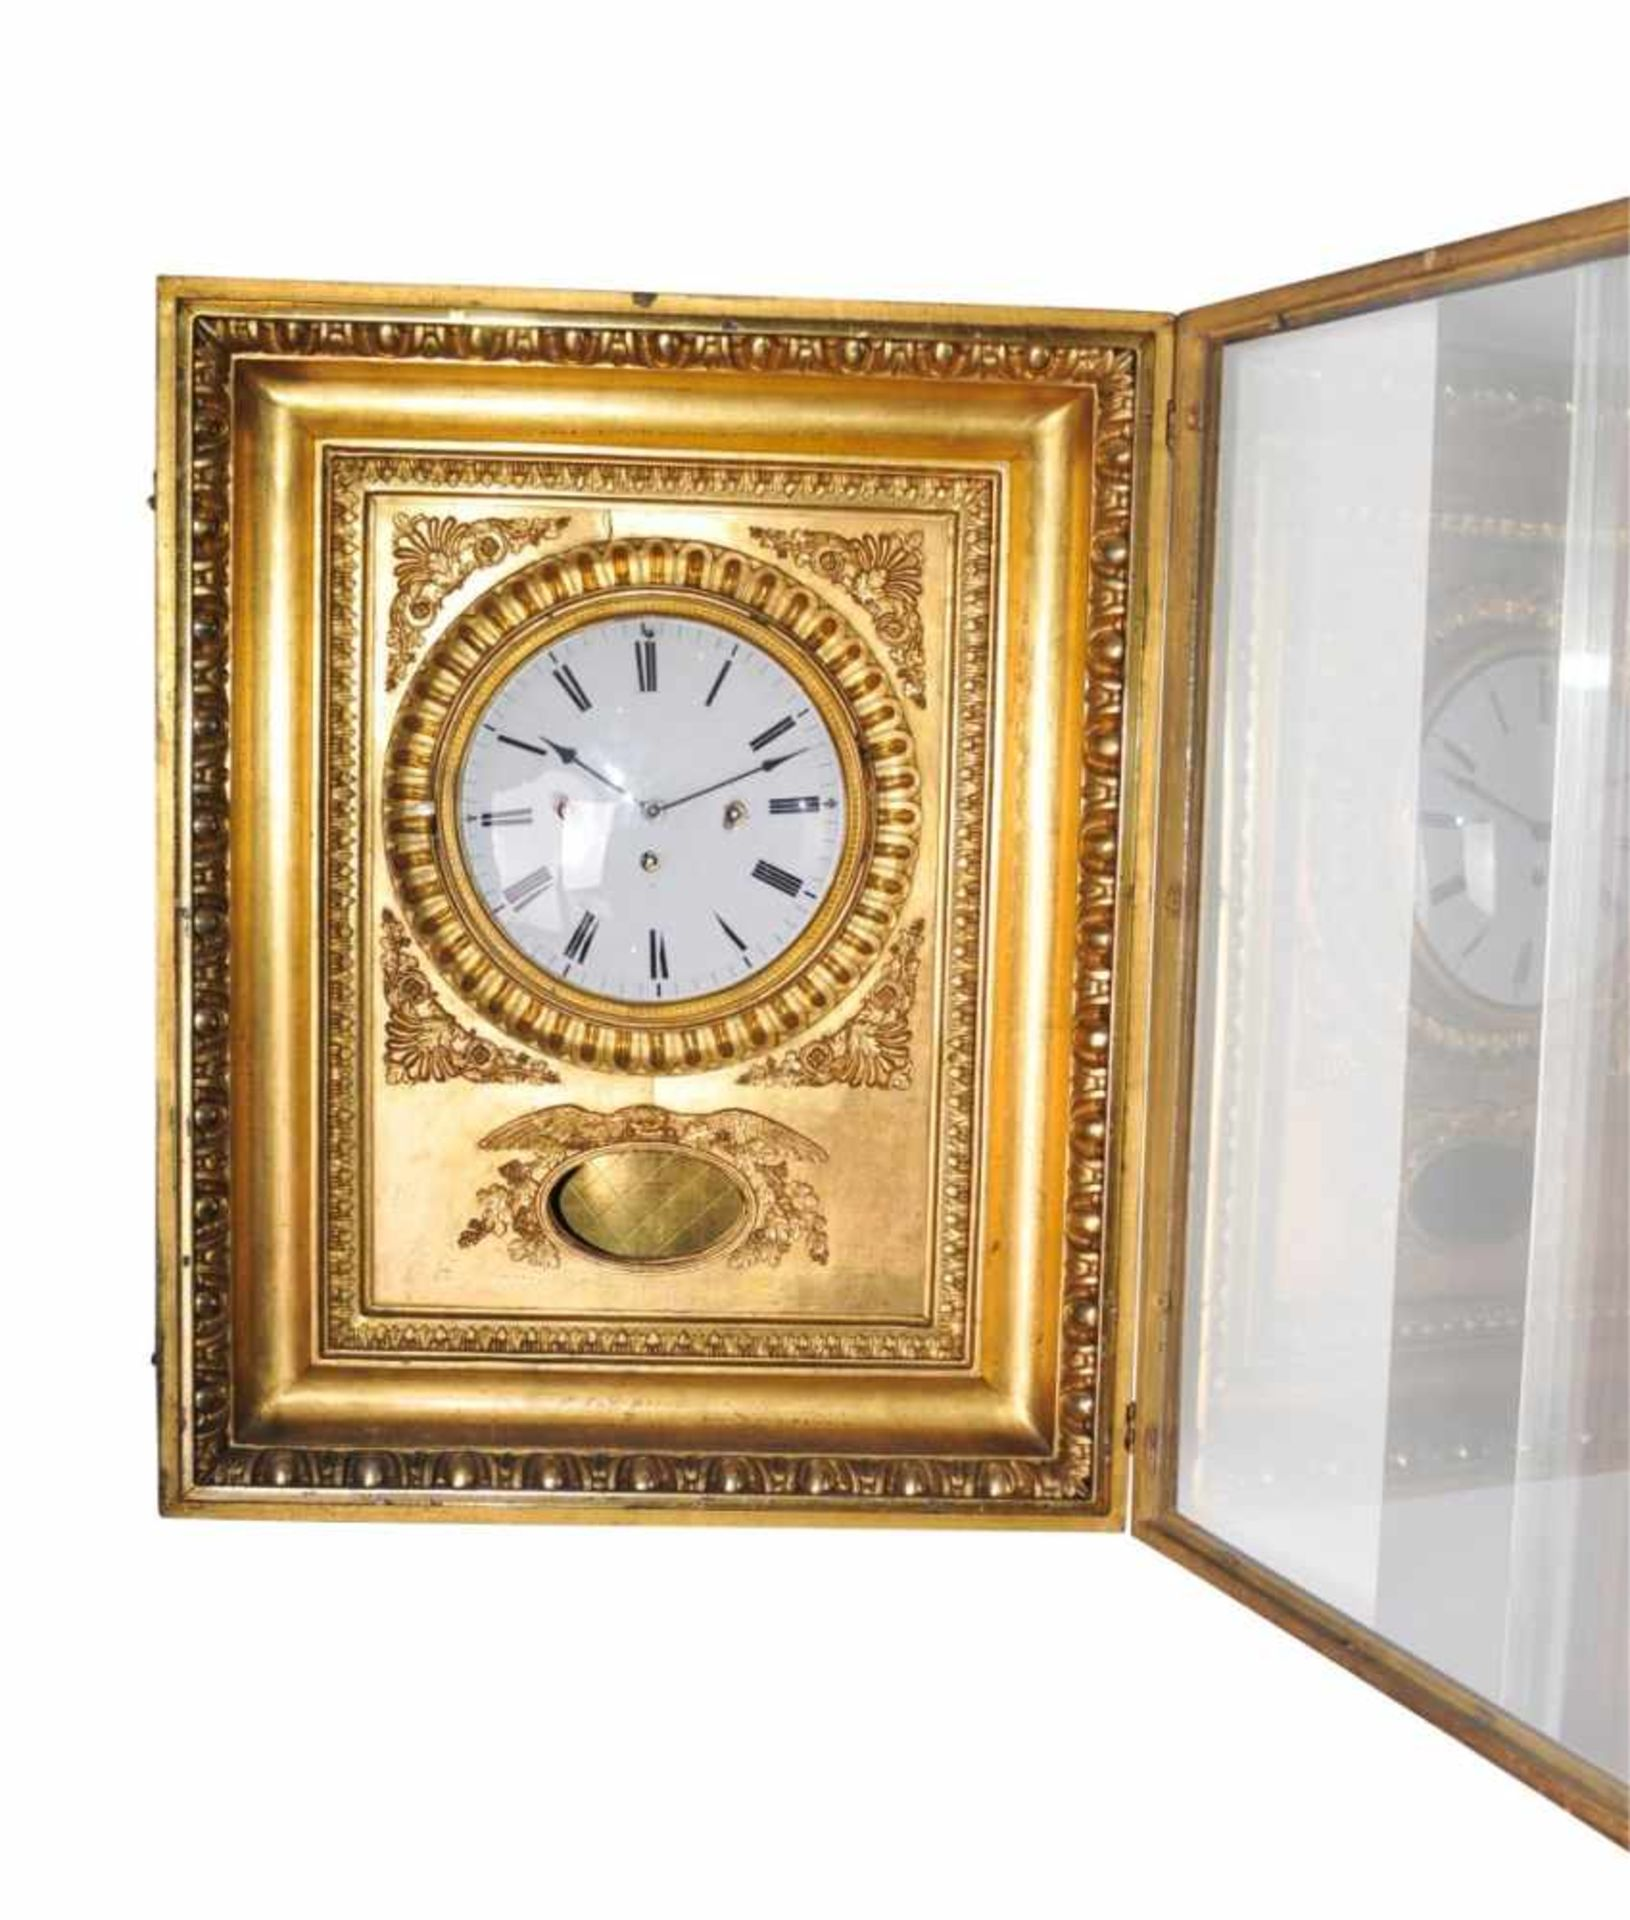 Los 57 - Viennese frame clockDecorative Viennese frame clock in gold-plated wooden frame with 4/4 striking